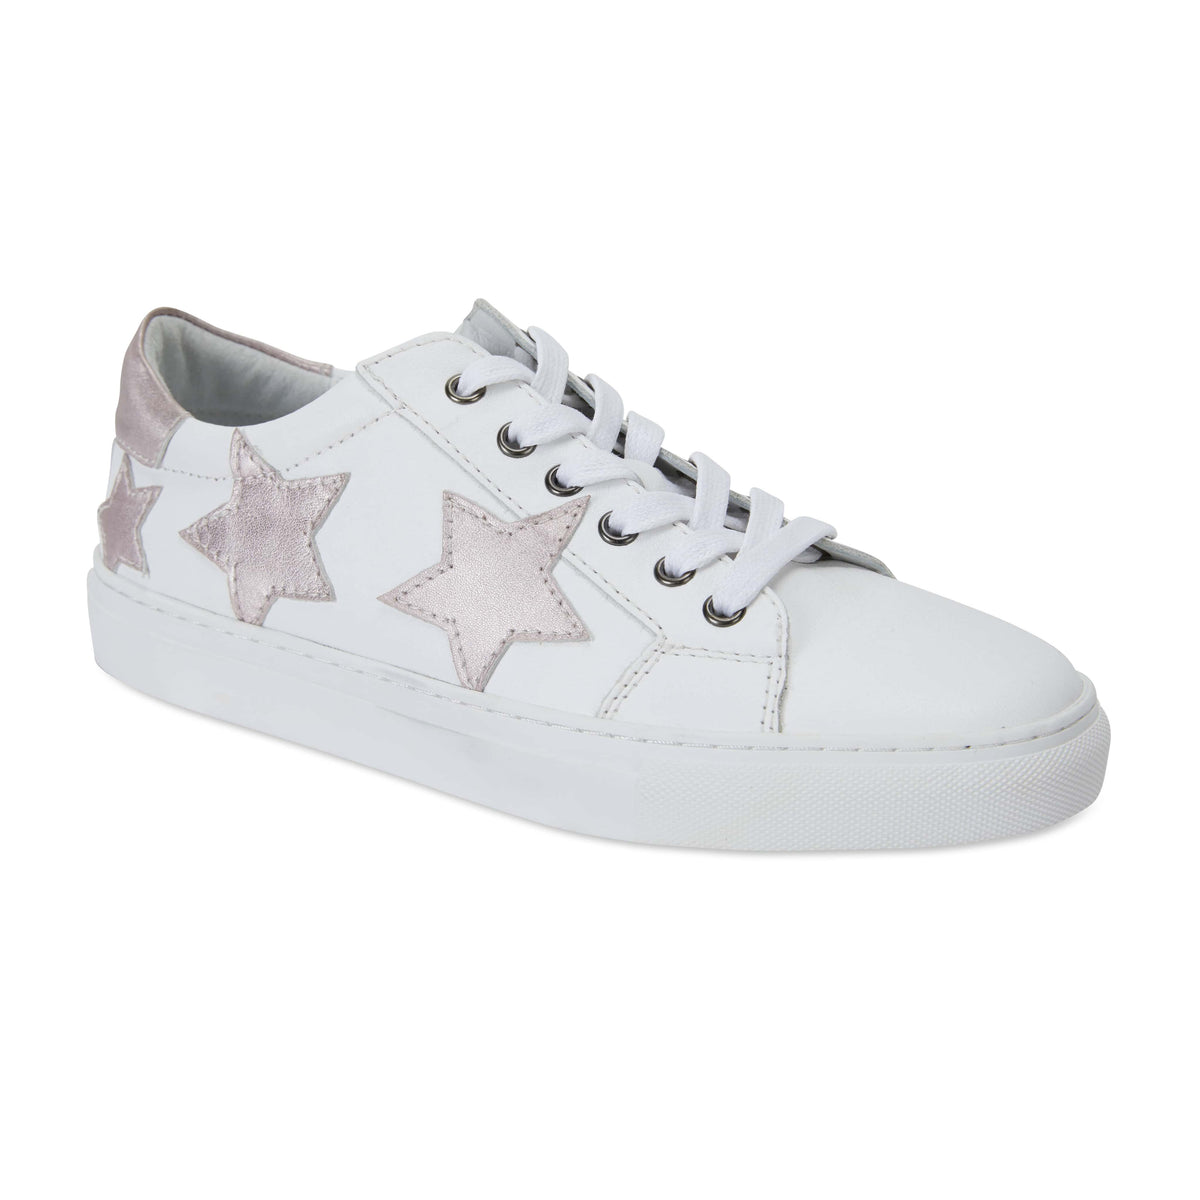 Campus Sneaker in White Leather